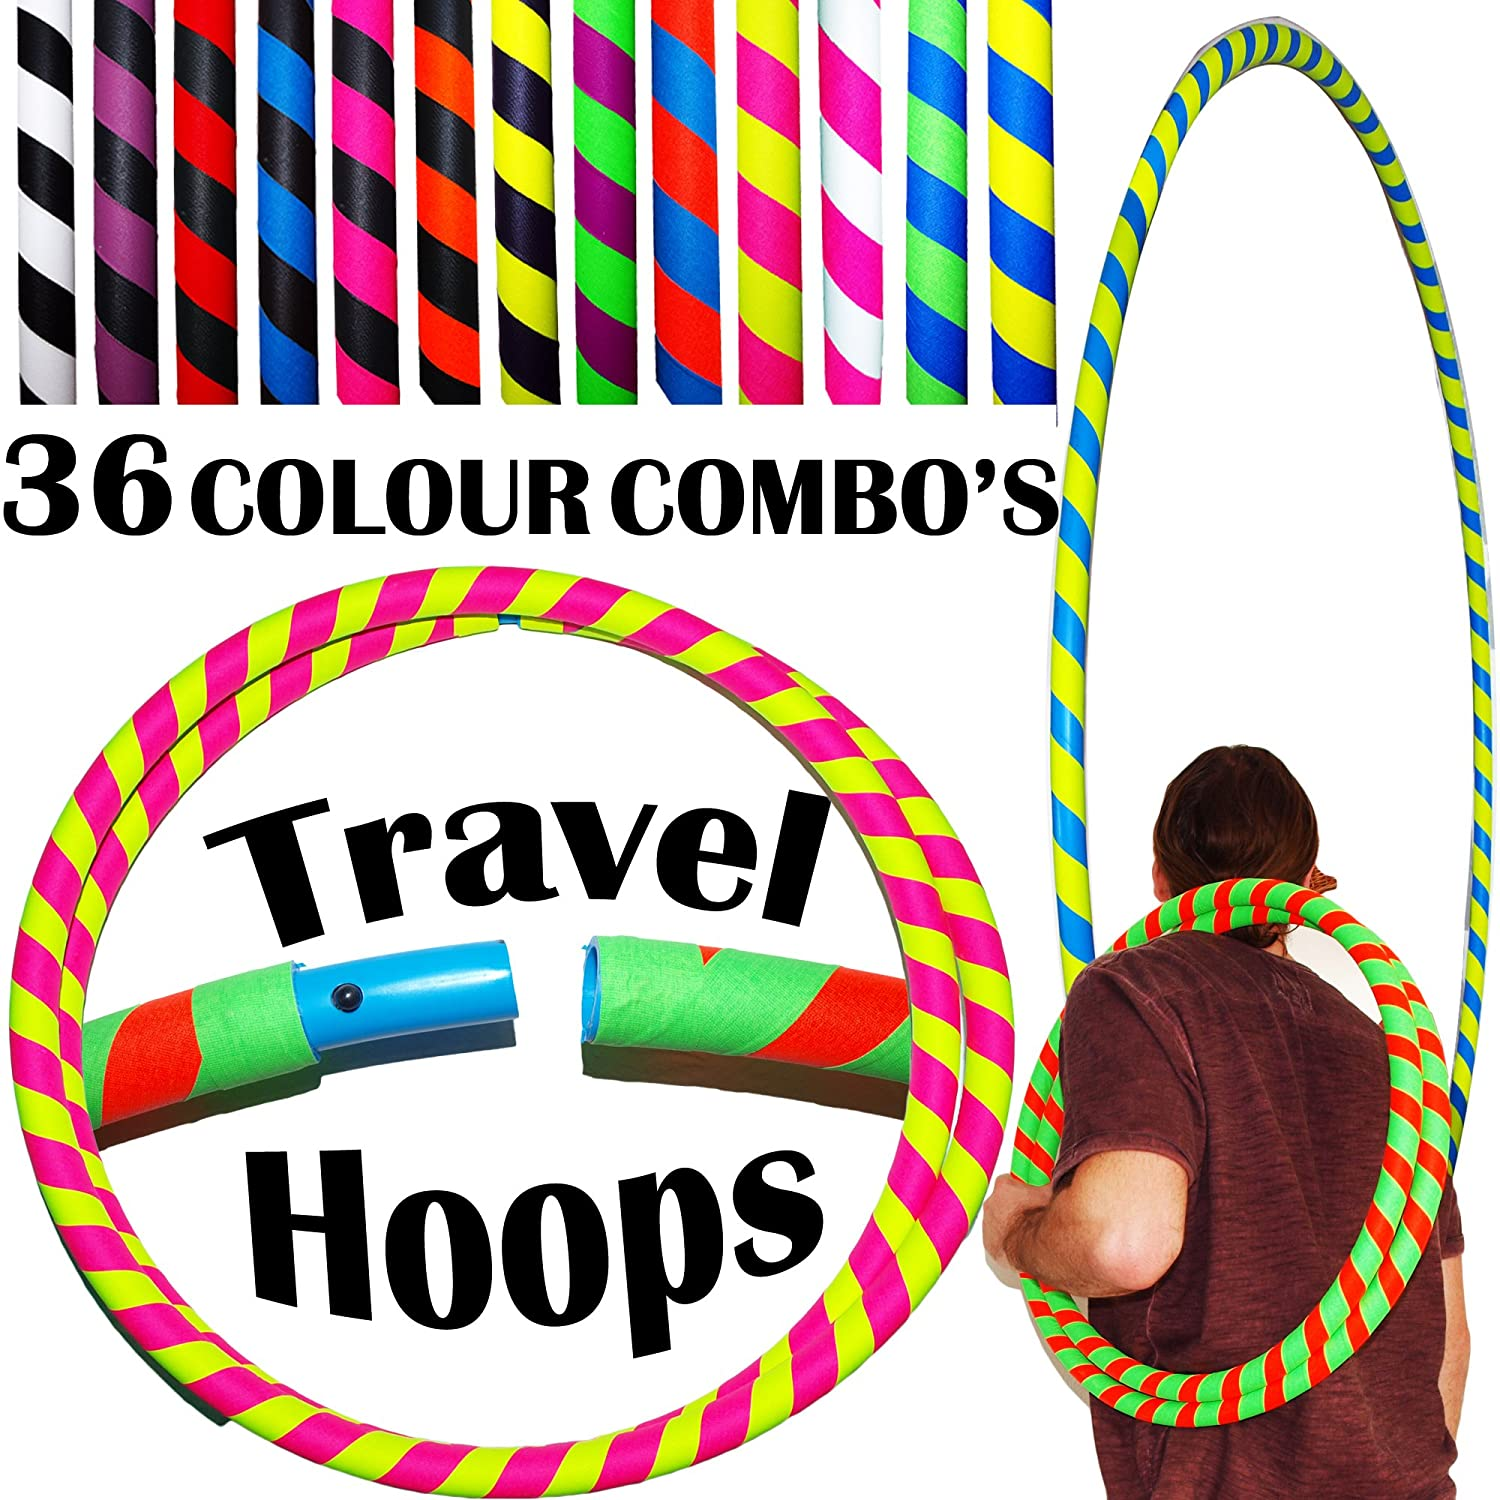 ULTRA-GRIP Pro Hula Hoops (100cm/39') UV Weighted TRAVEL Hula Hoop / Hula Hoops For Exercise, Dance & Fitness! (680g) NO Instructions Needed - Same Day Dispatch! Flames N Games